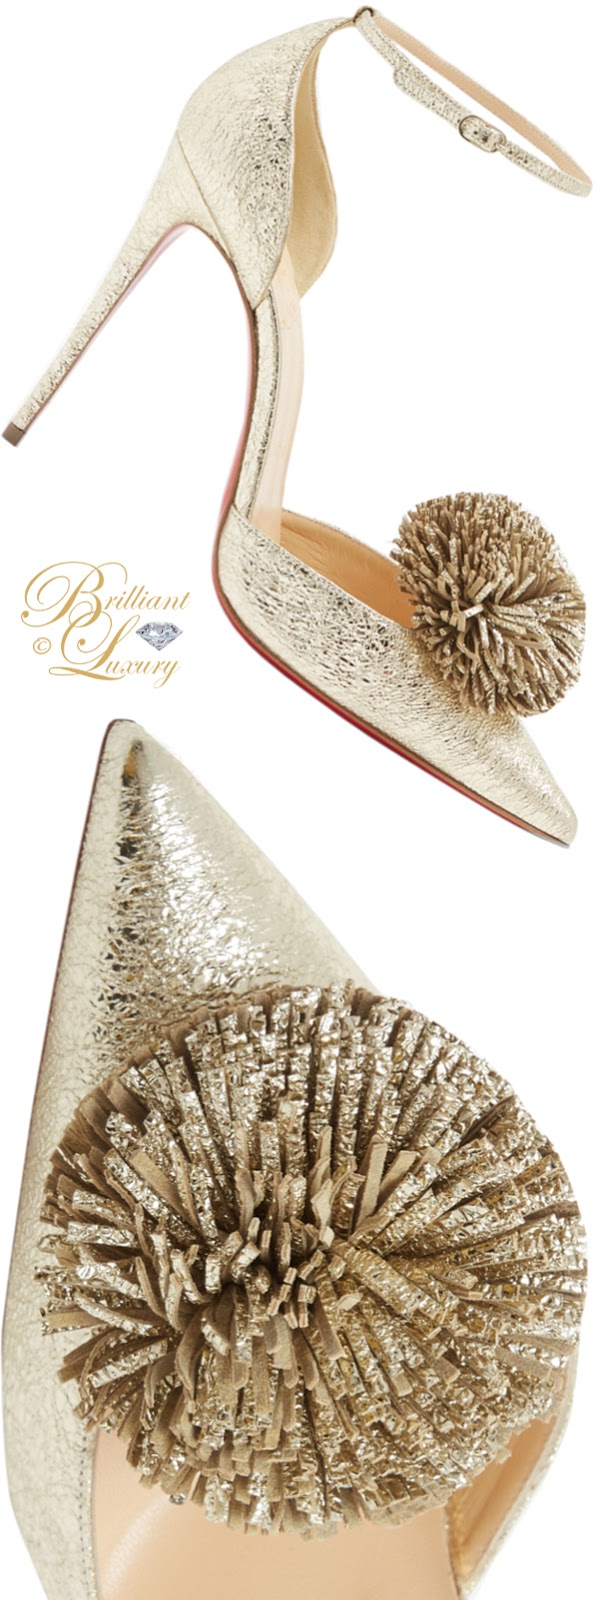 Brilliant Luxury ♦ Christian Louboutin Tsarou pompom leather pumps